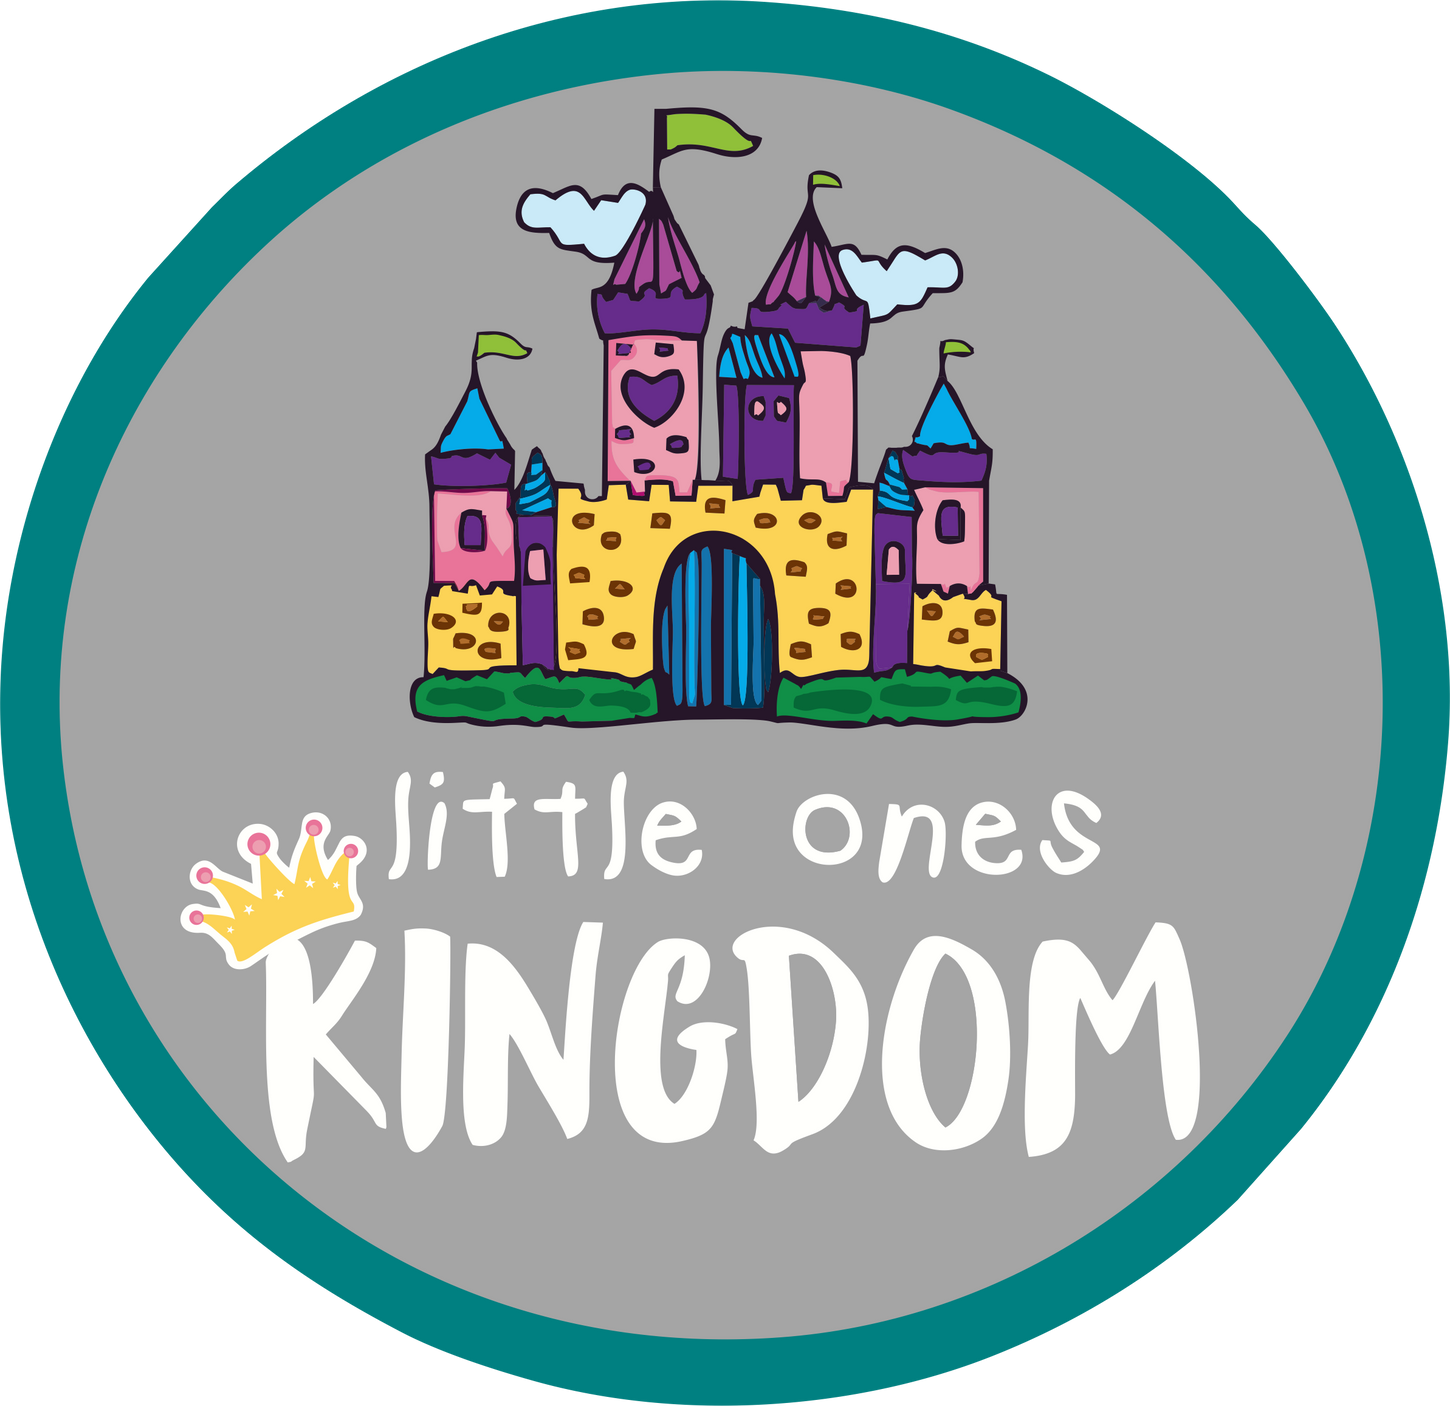 Little ones kingdom